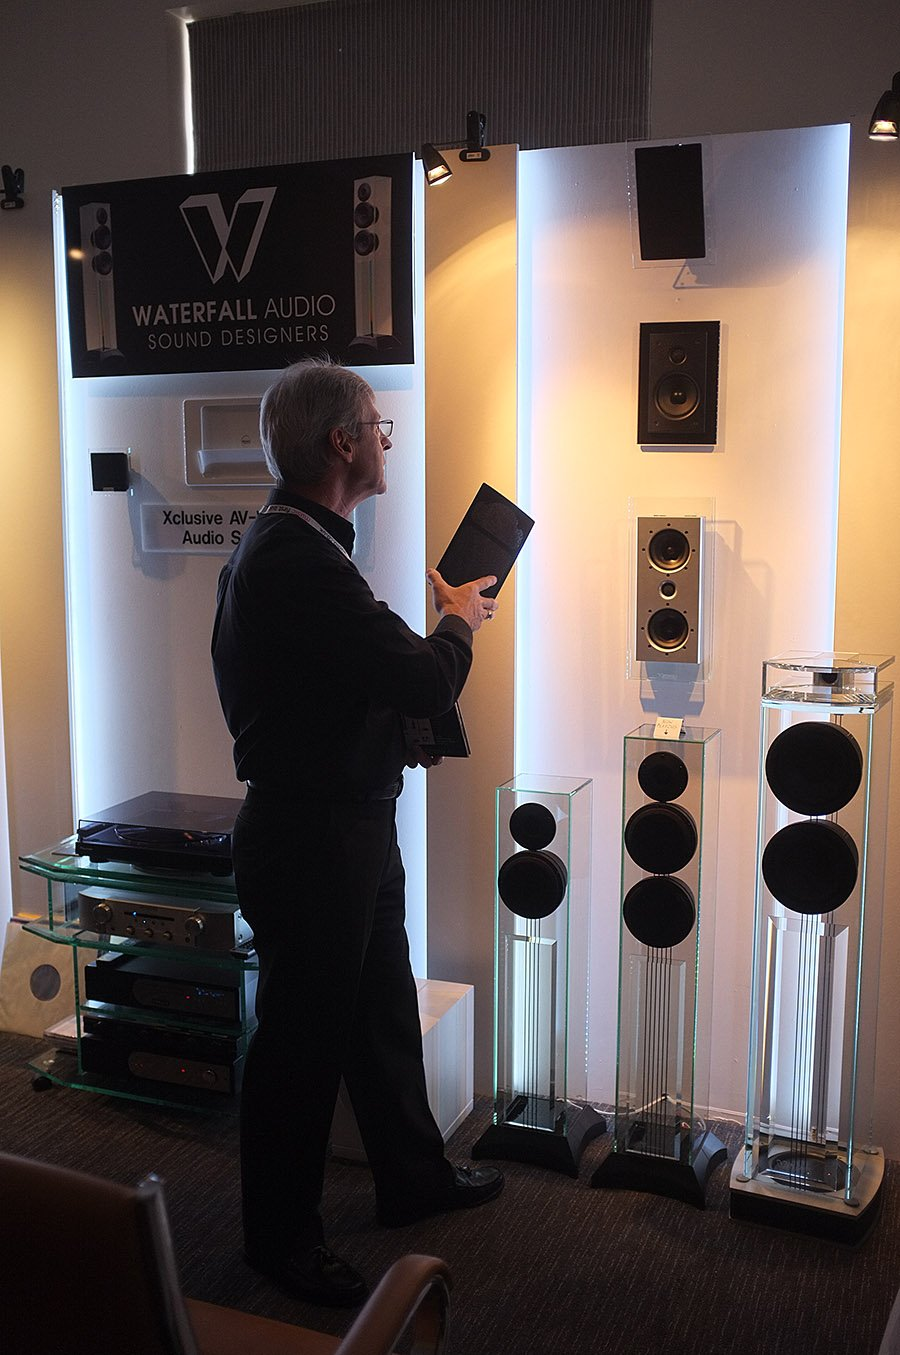 national_audio_show_2016_xlusive_audio_2_online